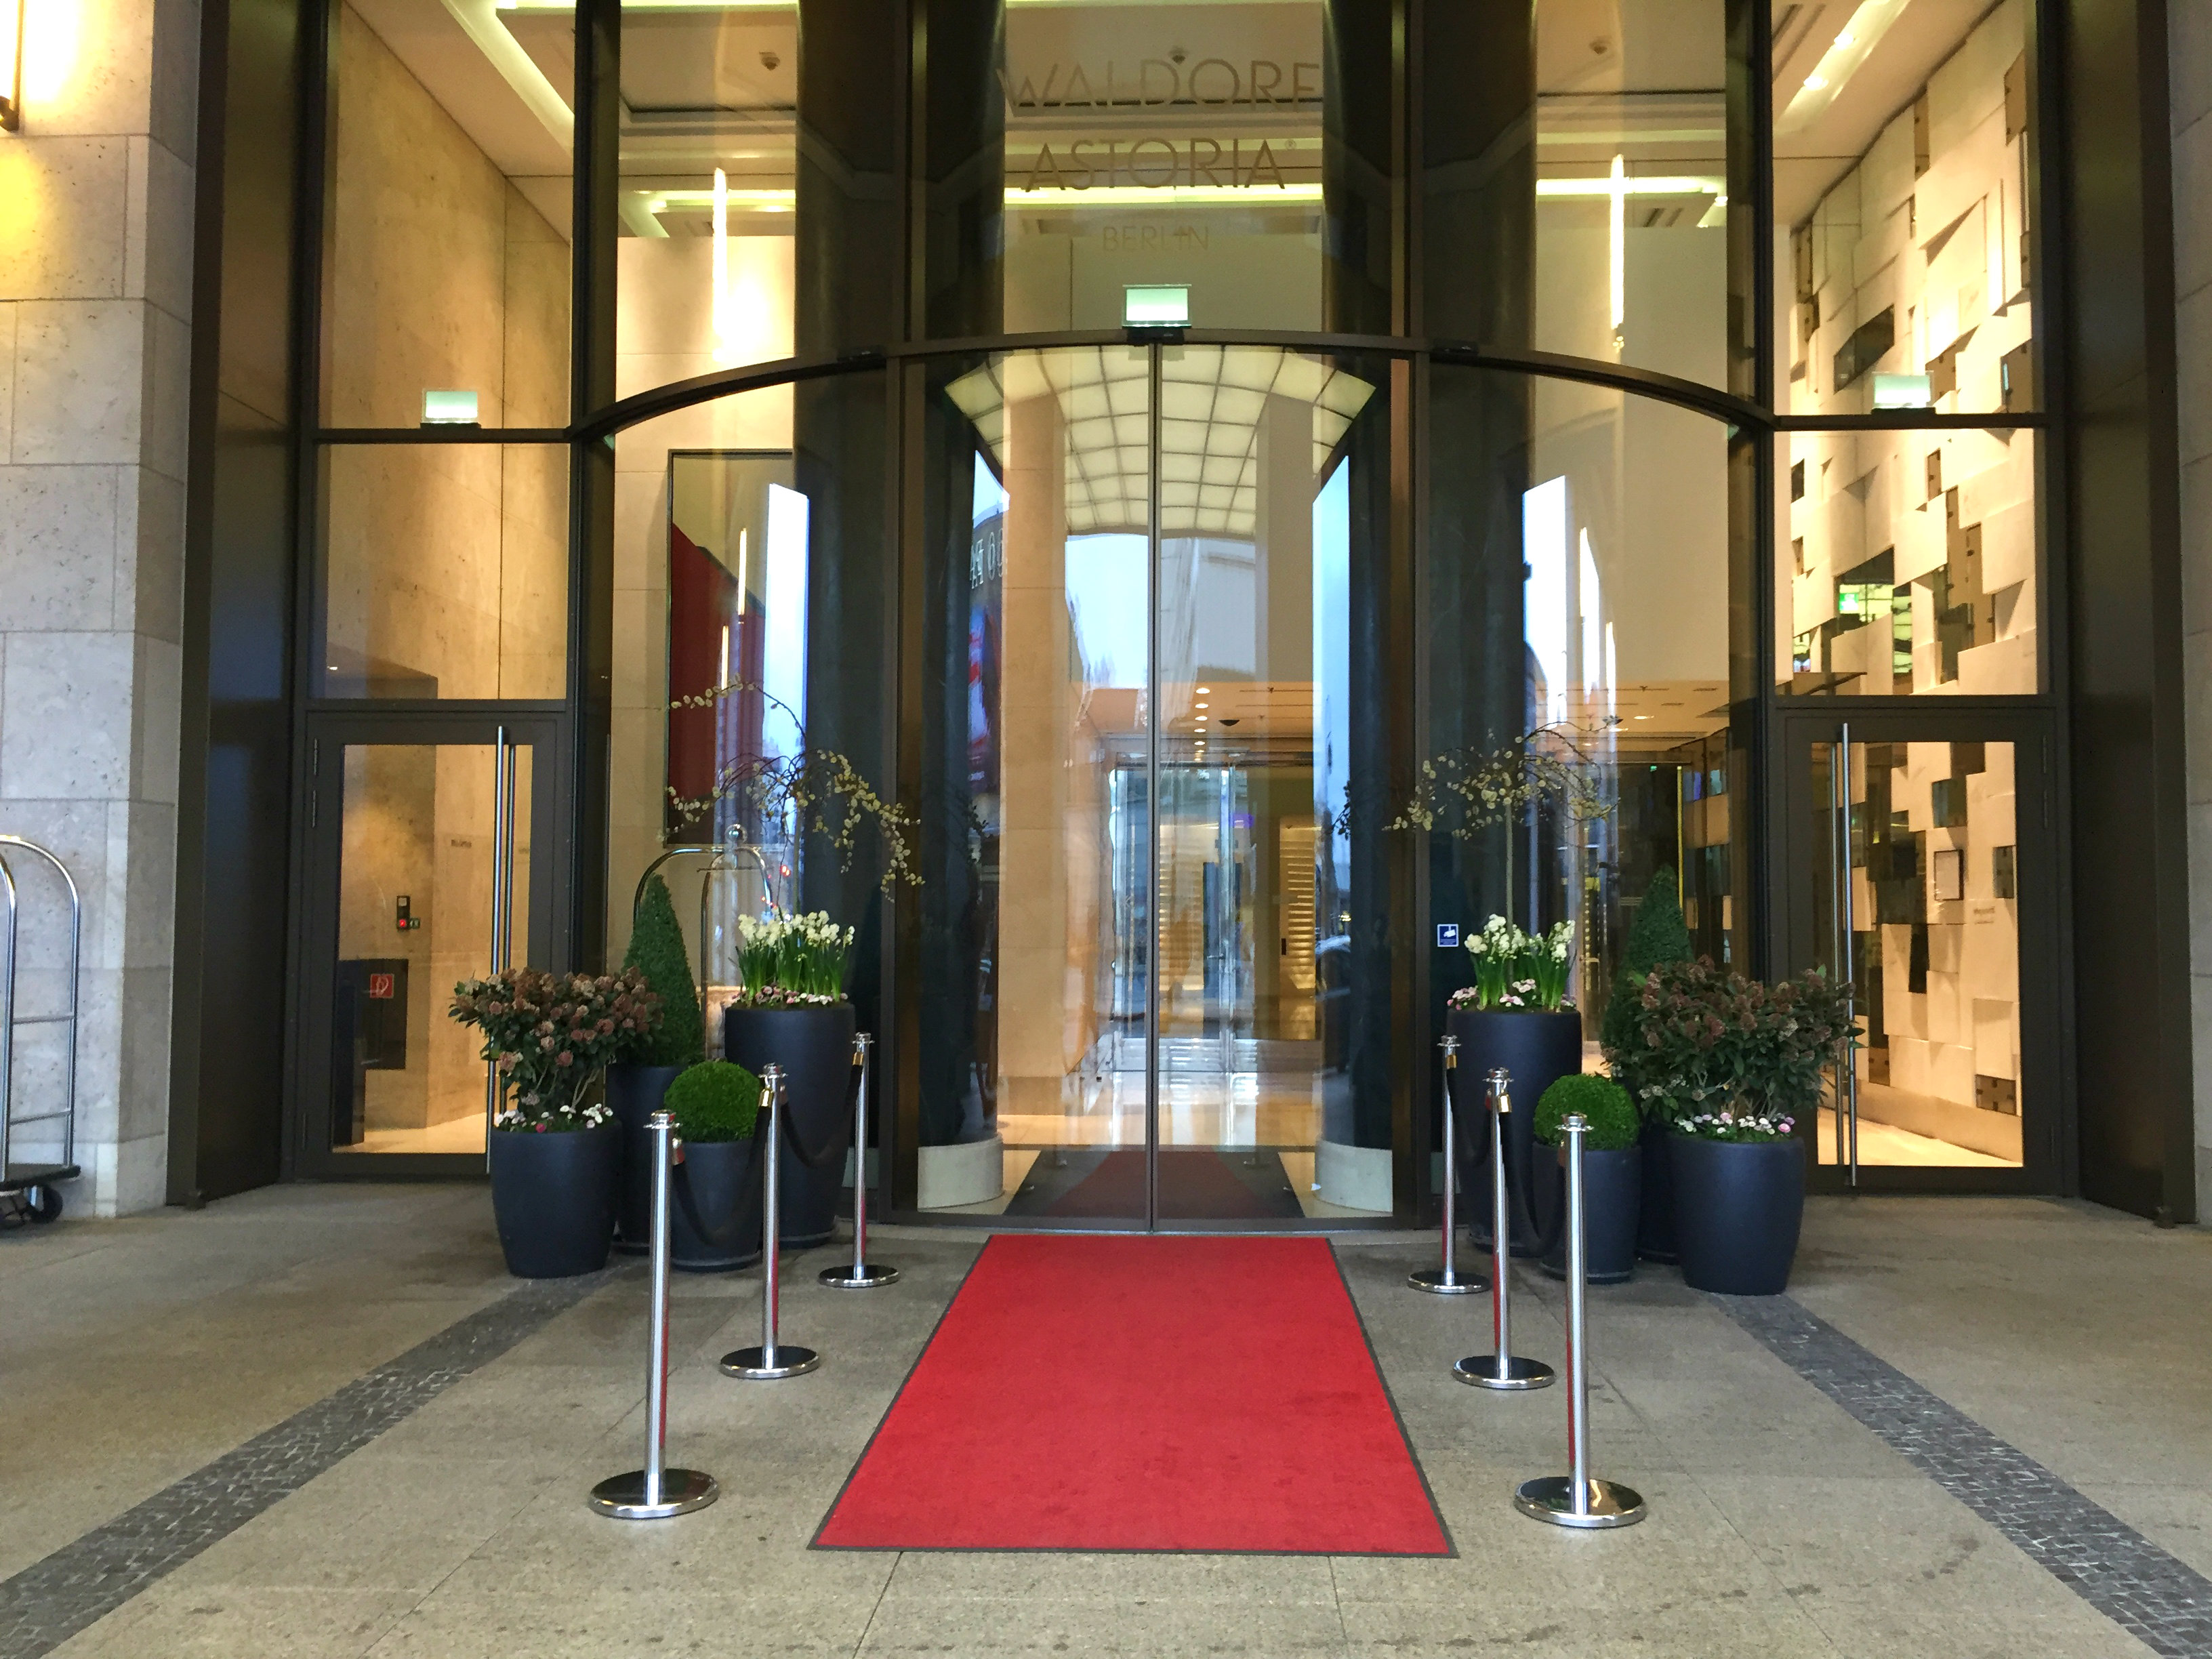 Waldorf Astoria Berlin front door